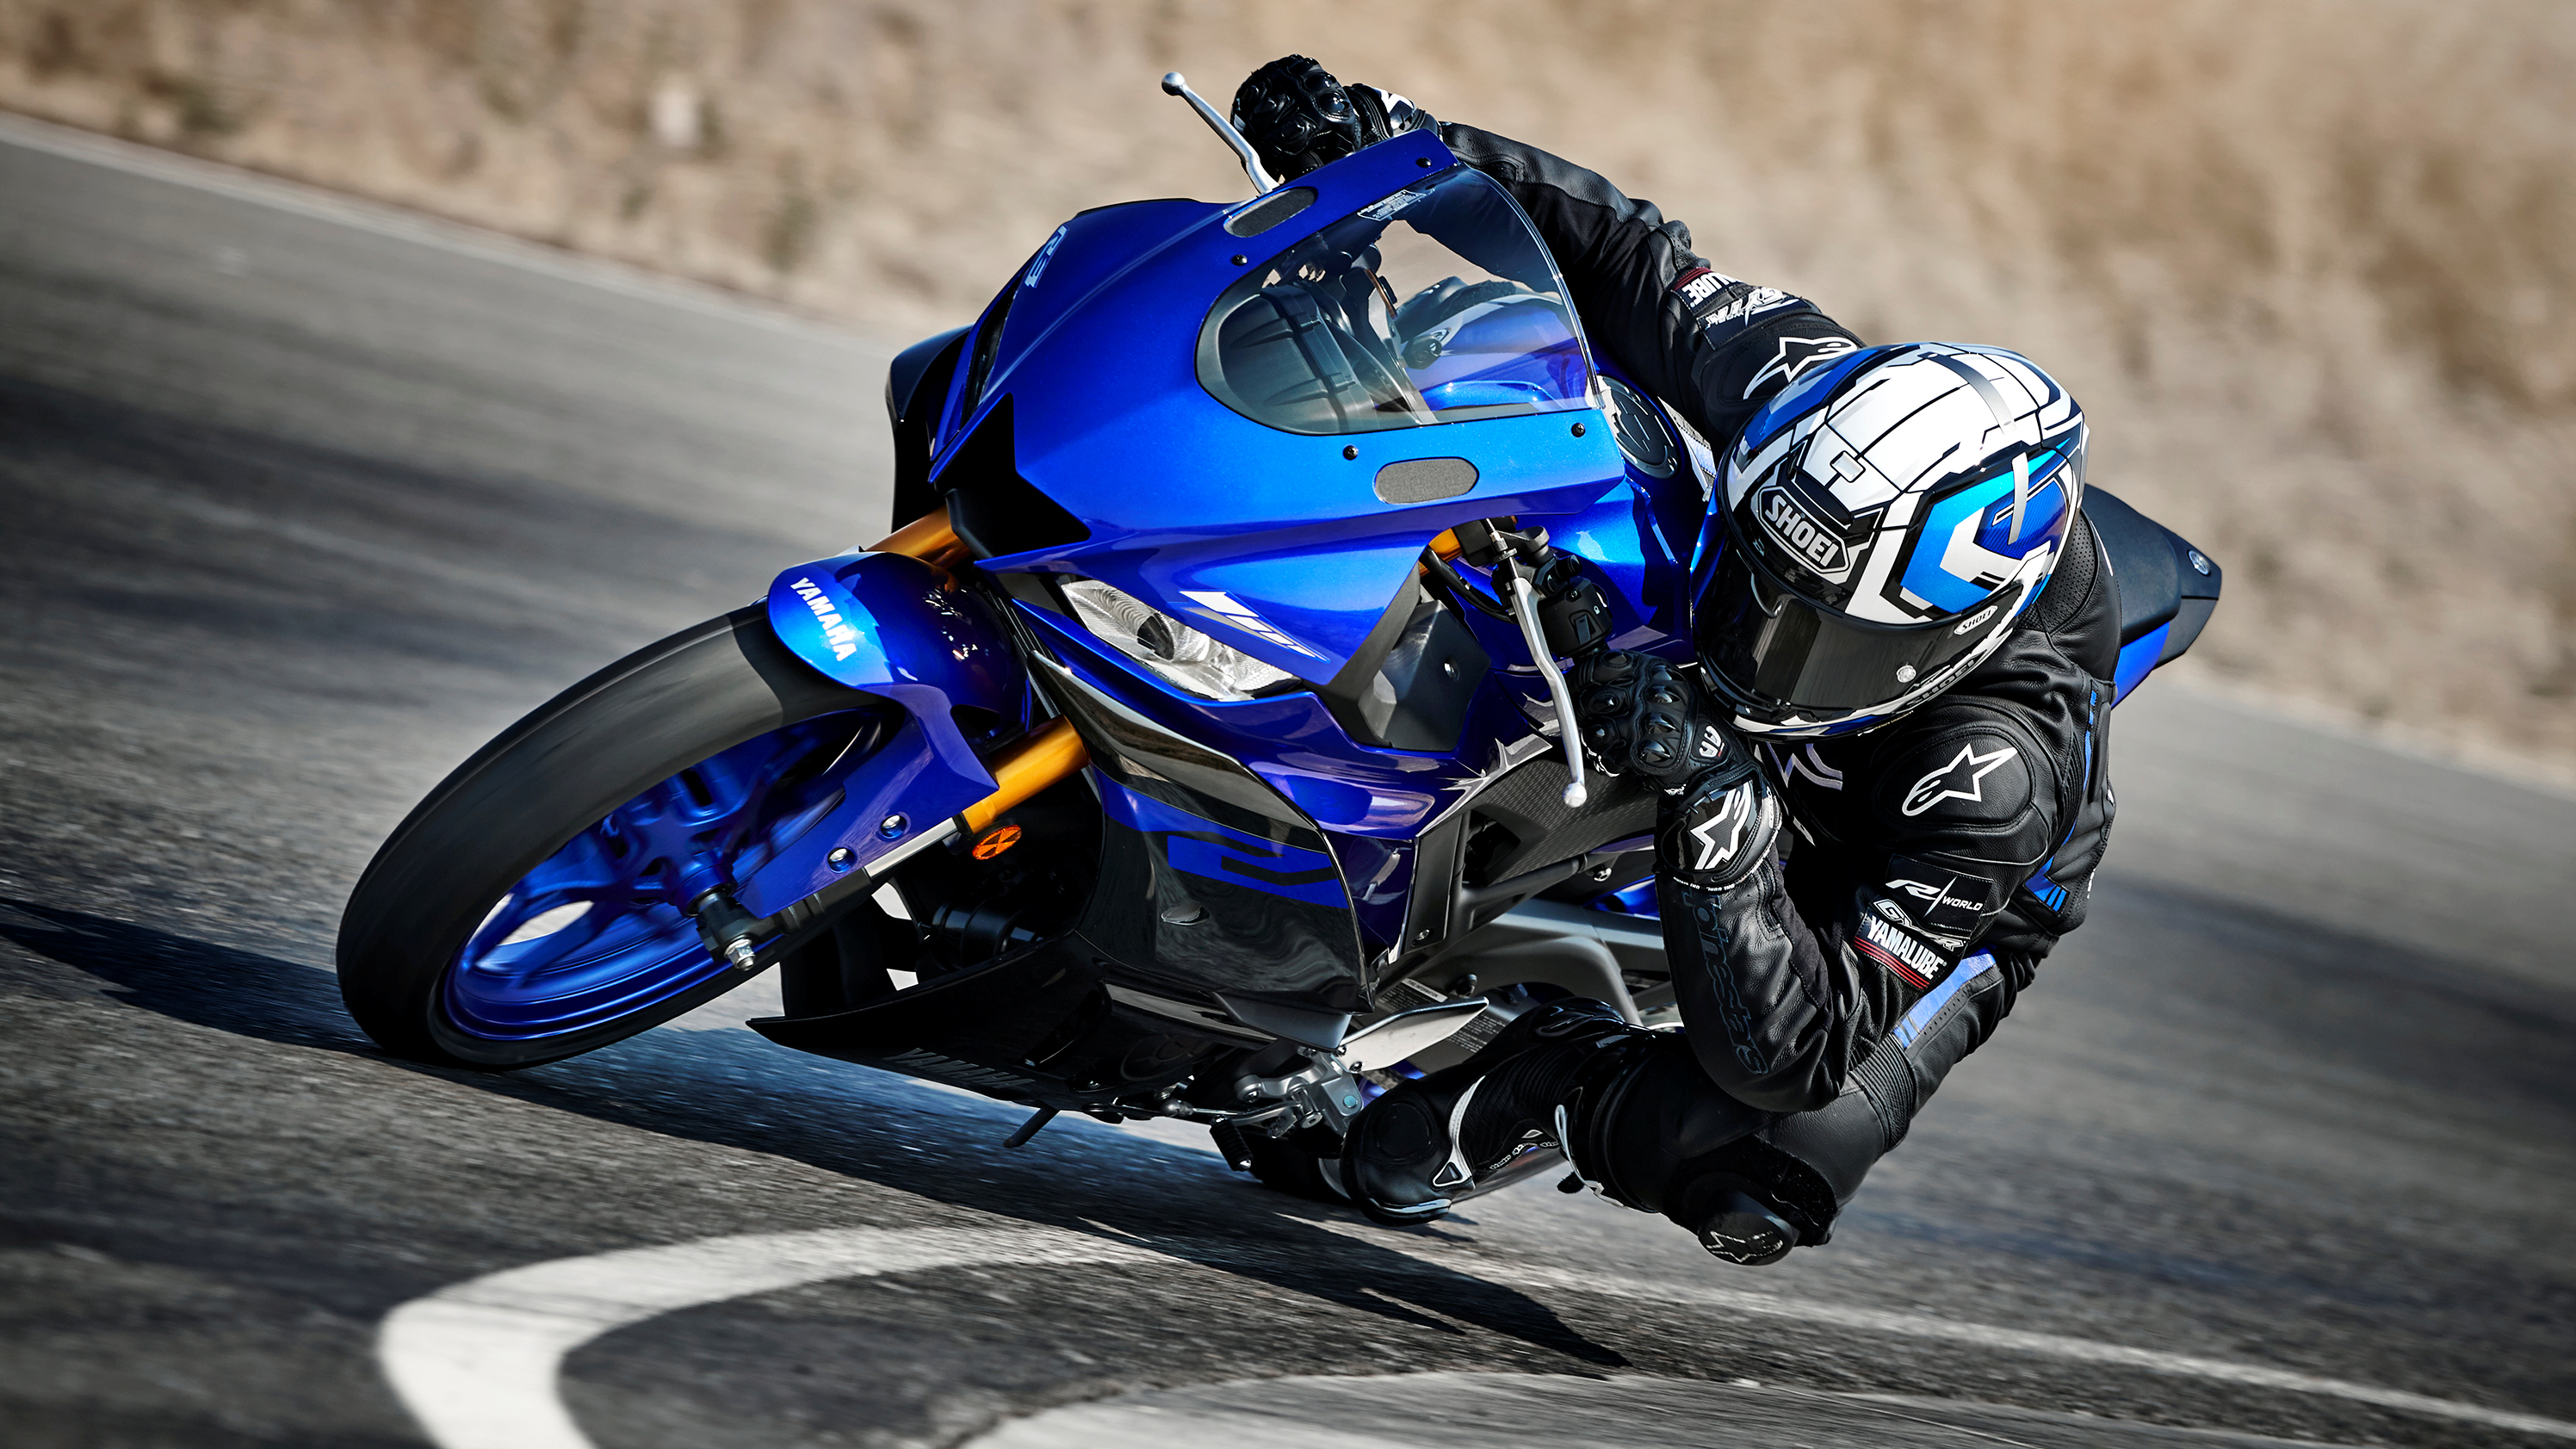 2019 Yamaha YZF-R3 Pictures, Photos, Wallpapers.